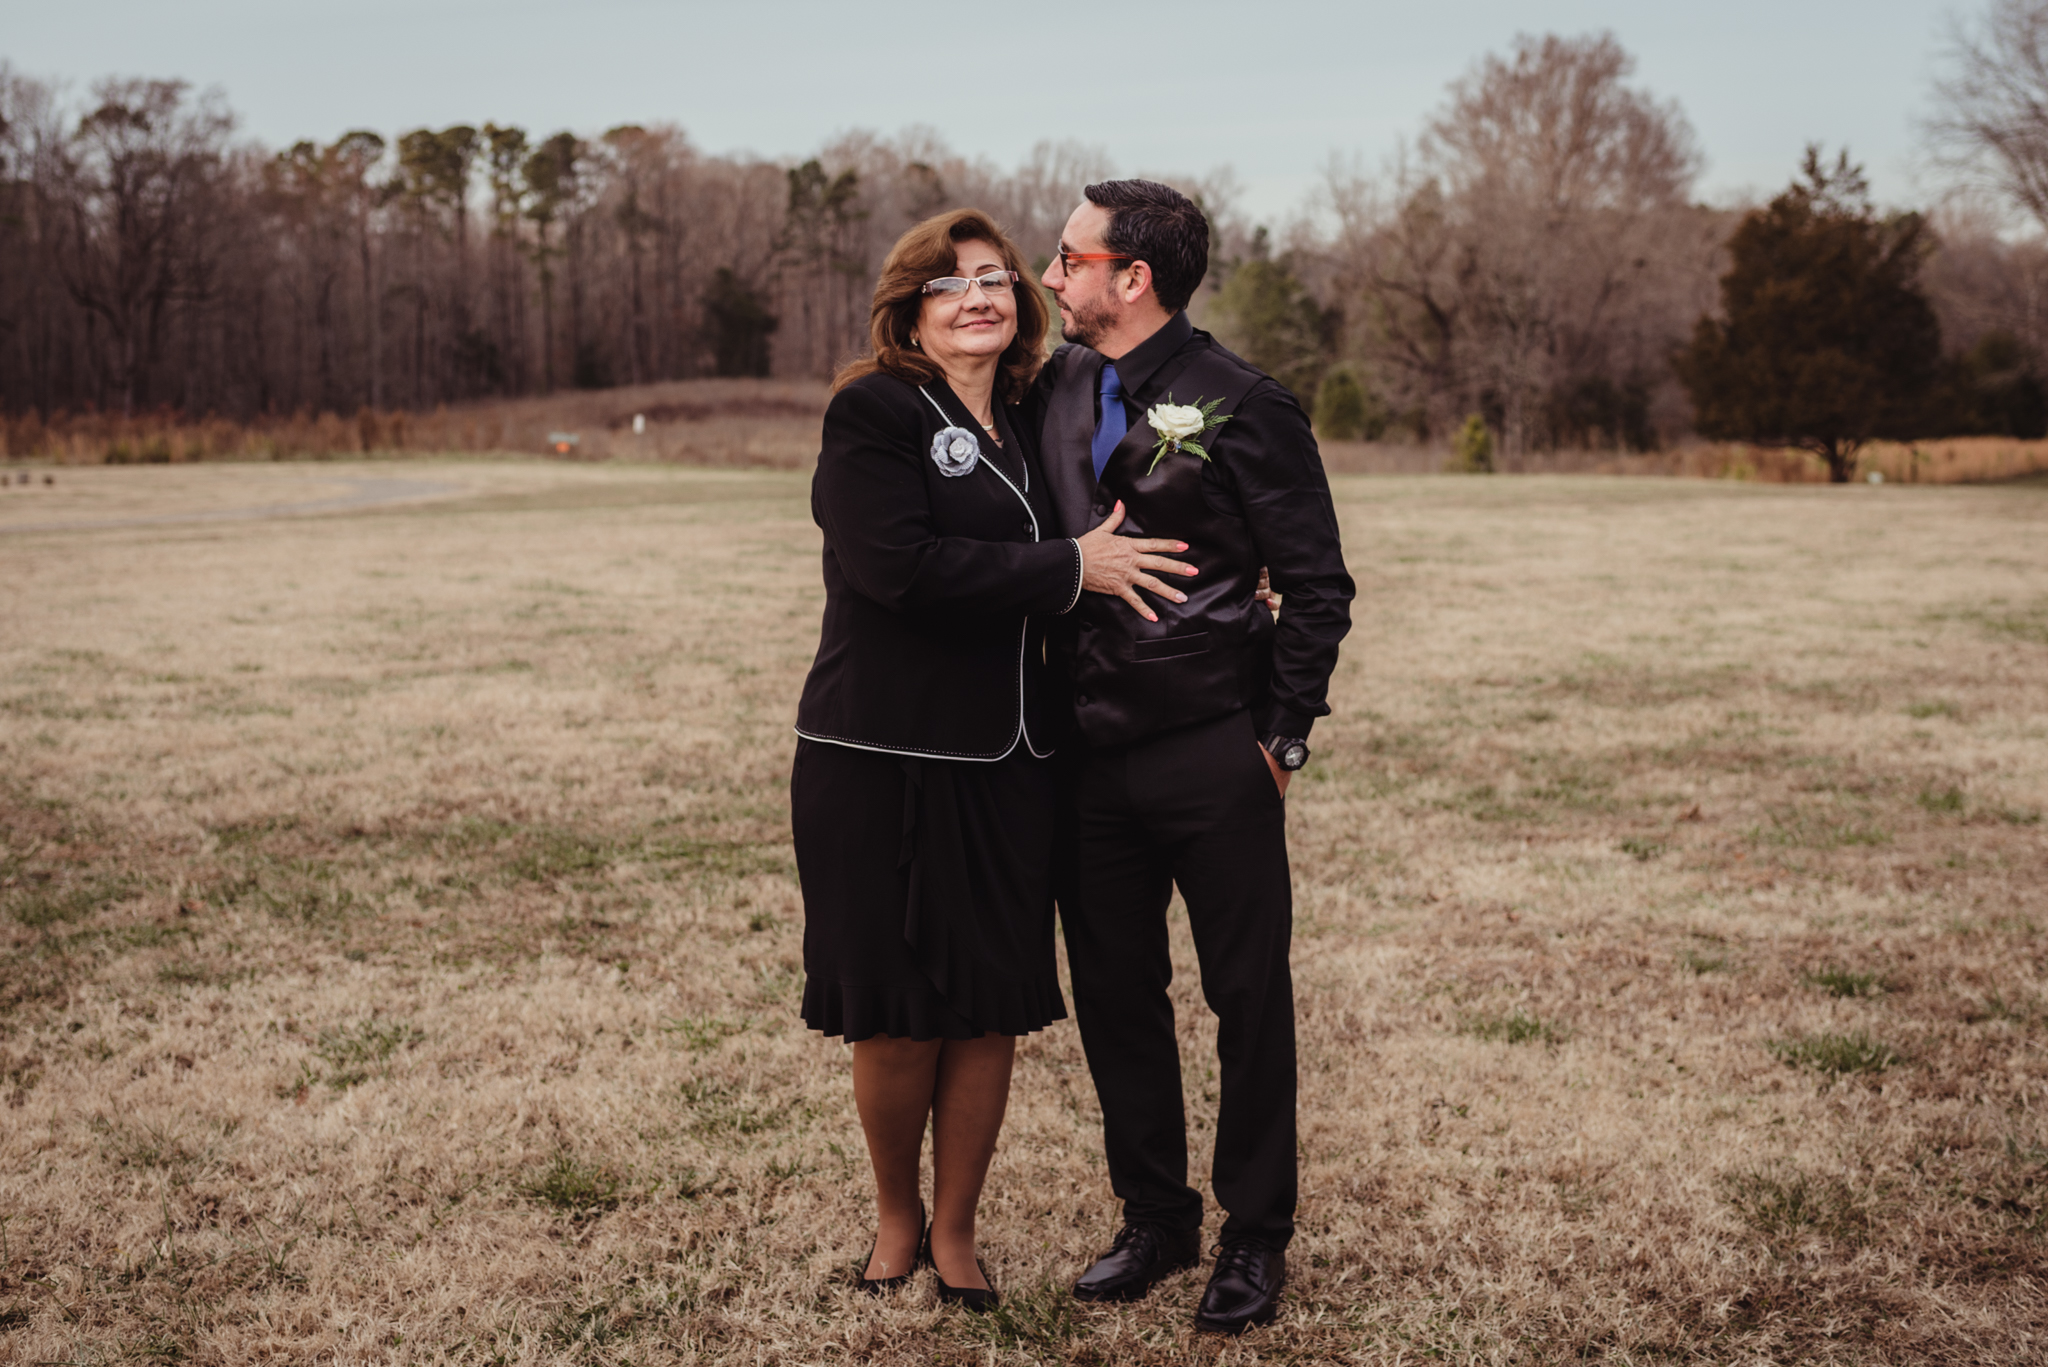 the-groom-and-his-mother-in-the-park-in-Raleigh.jpg